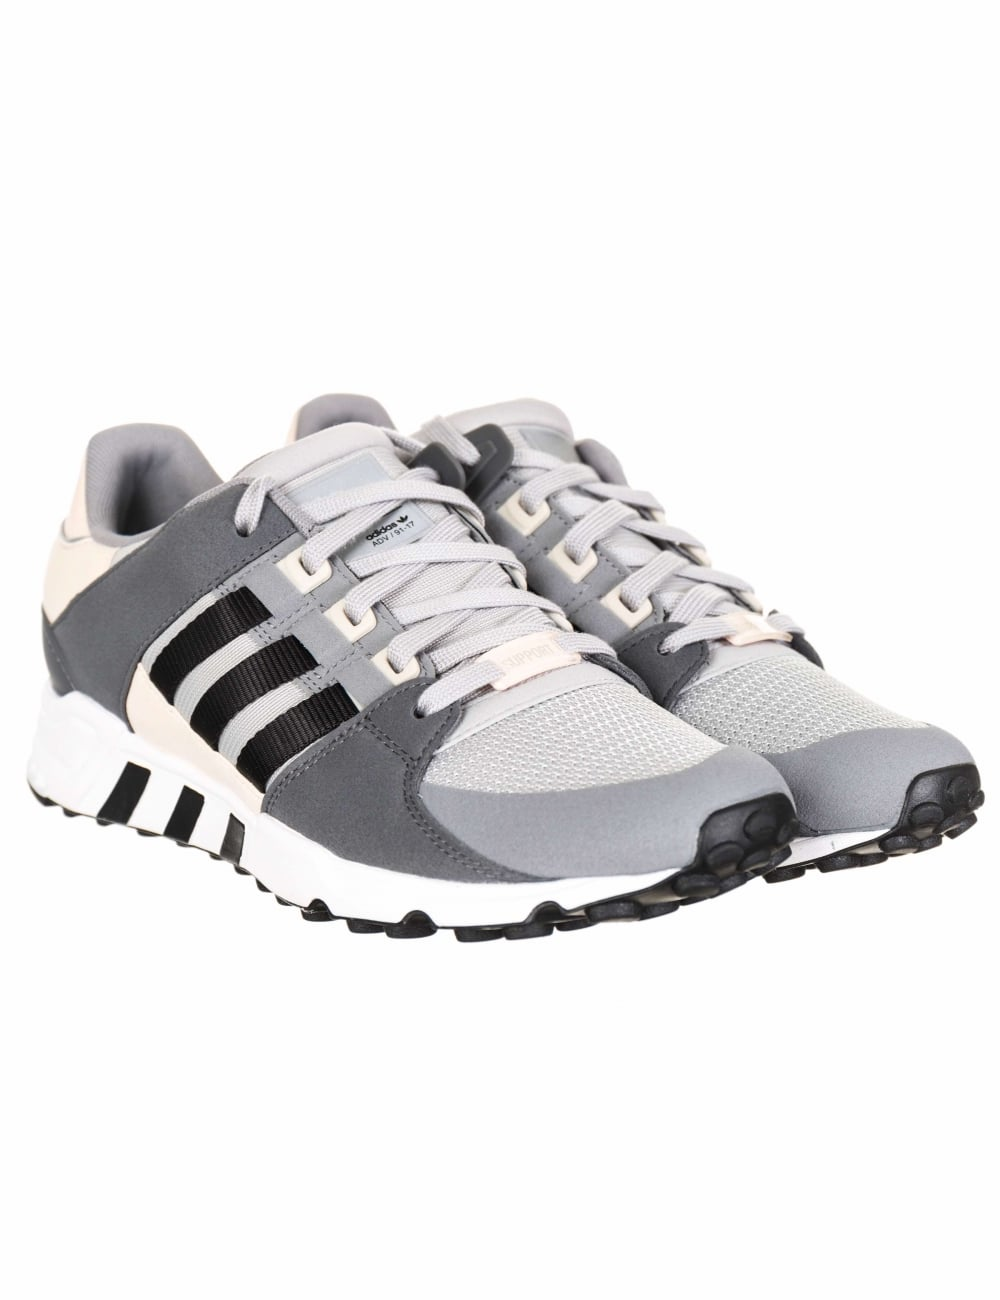 100% authentic 4c907 0aeec EQT Support RF Trainers - Grey Two/Core Black